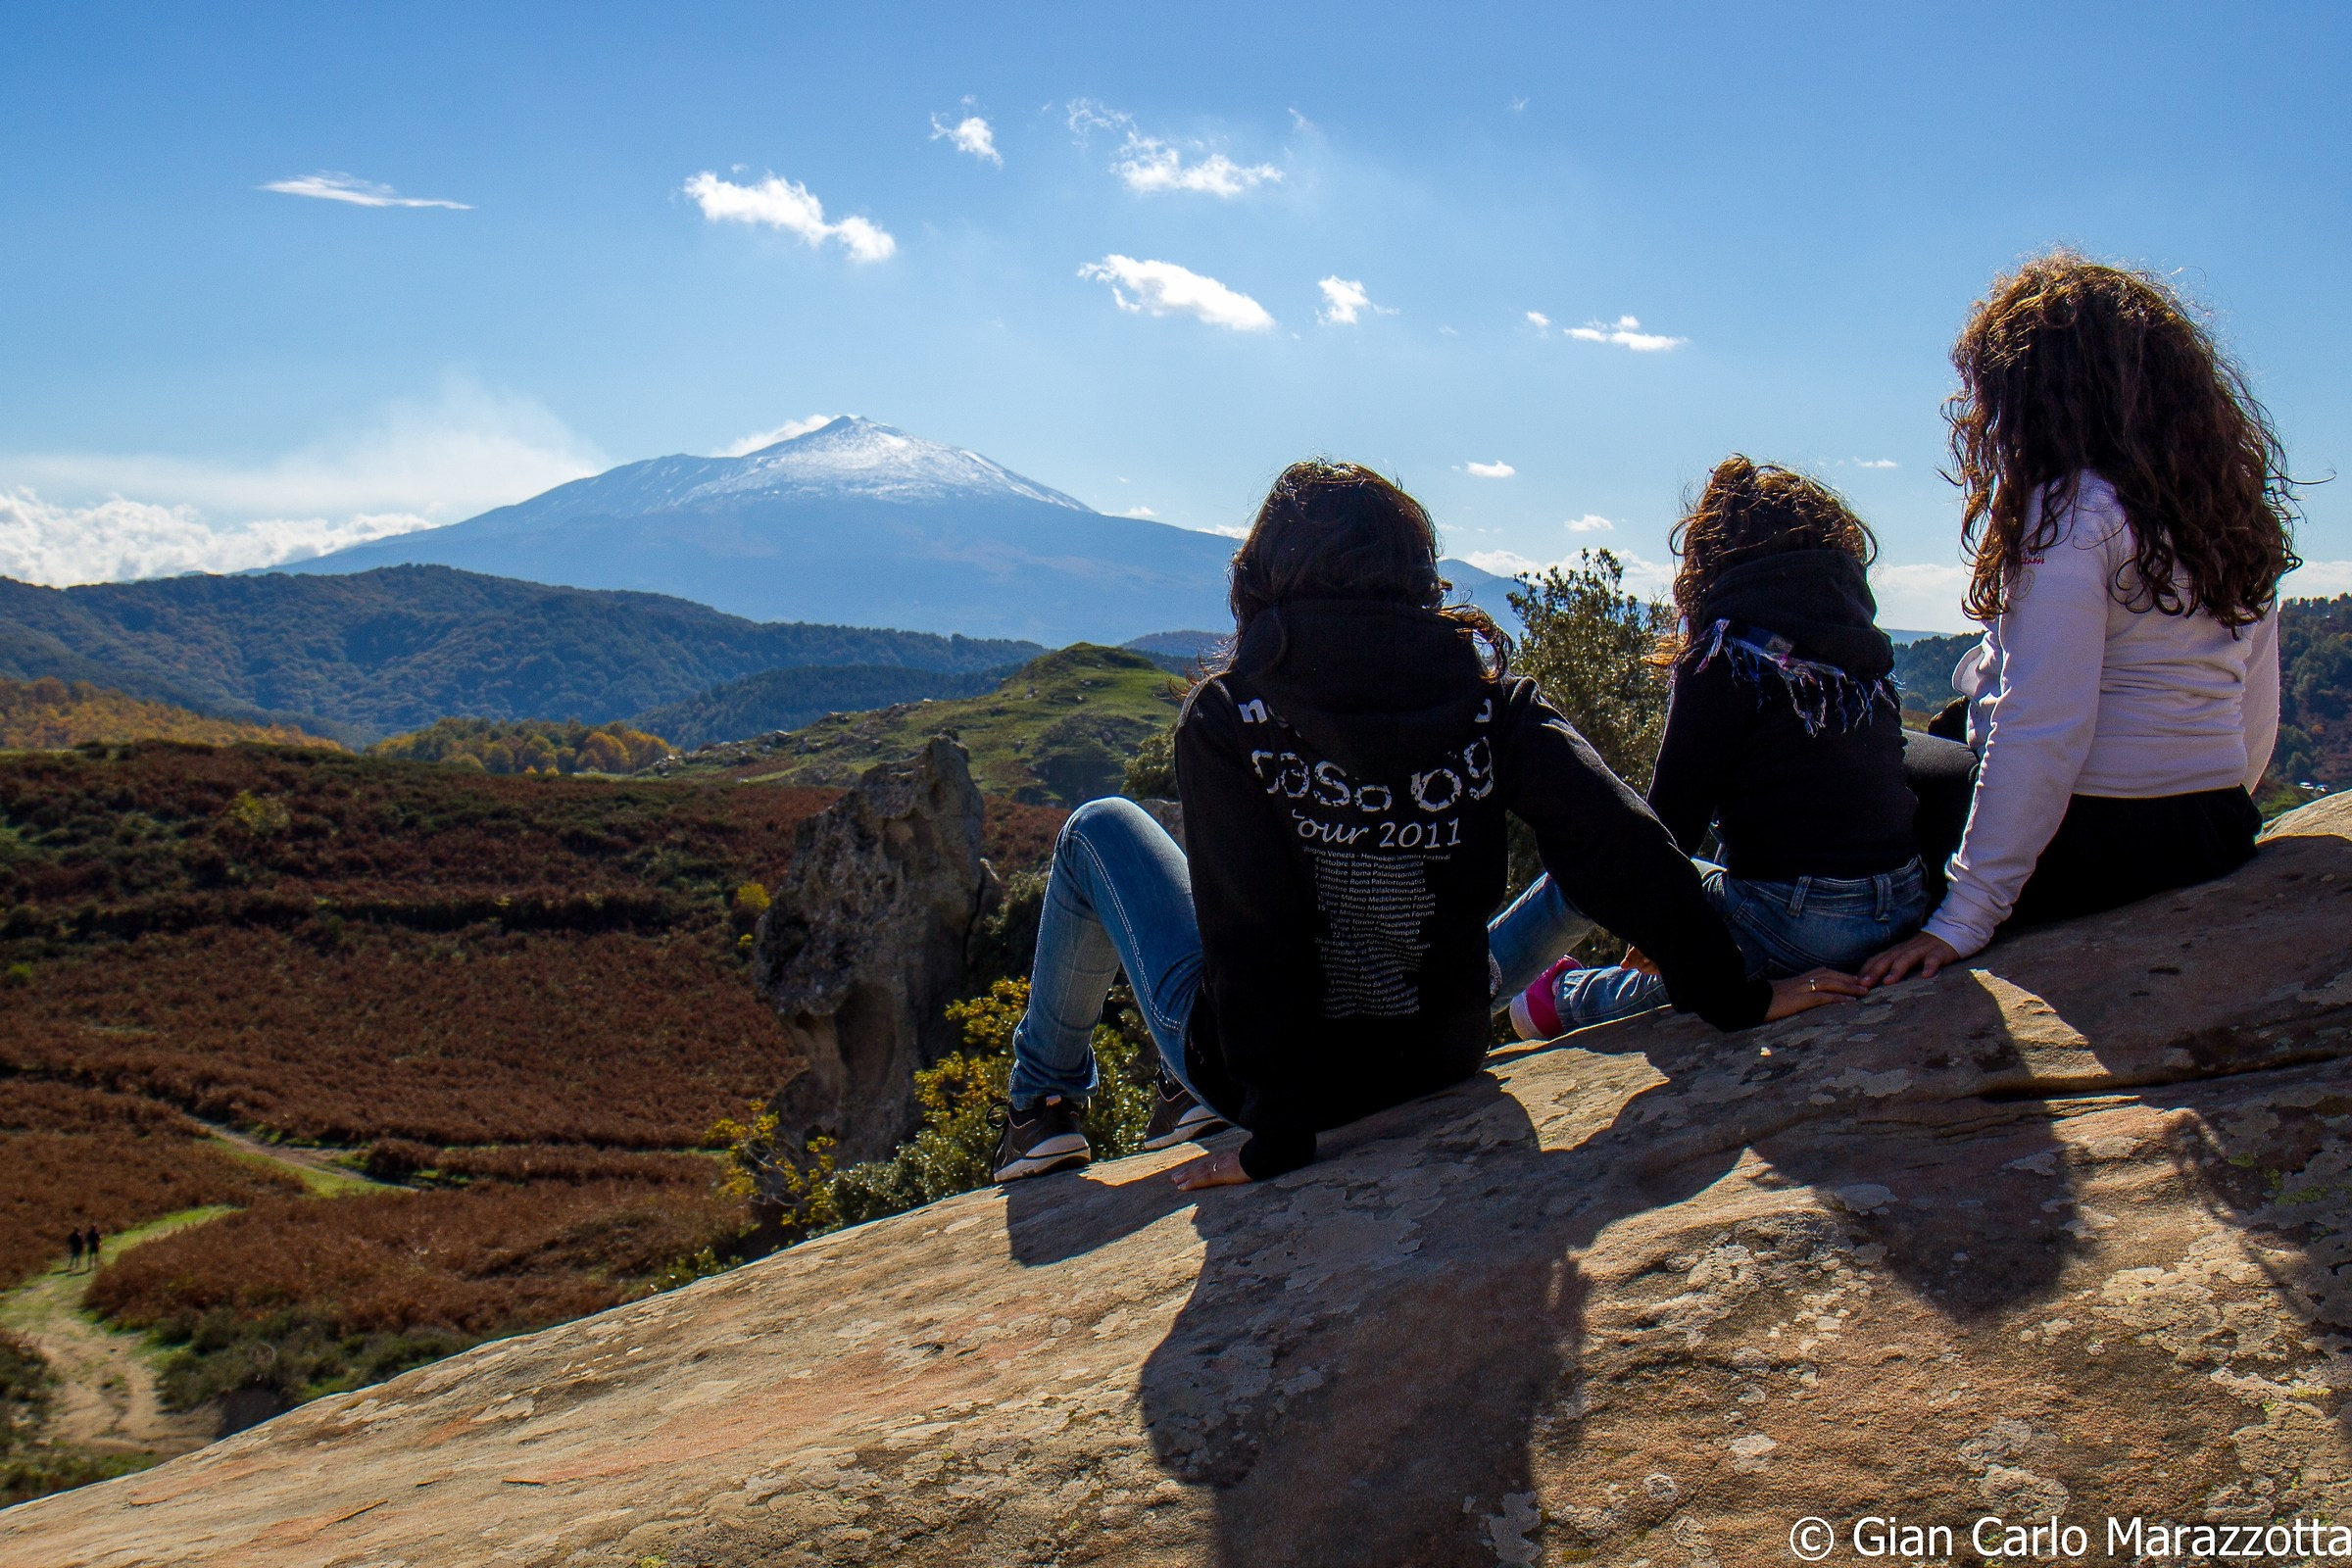 Looking at the Etna...